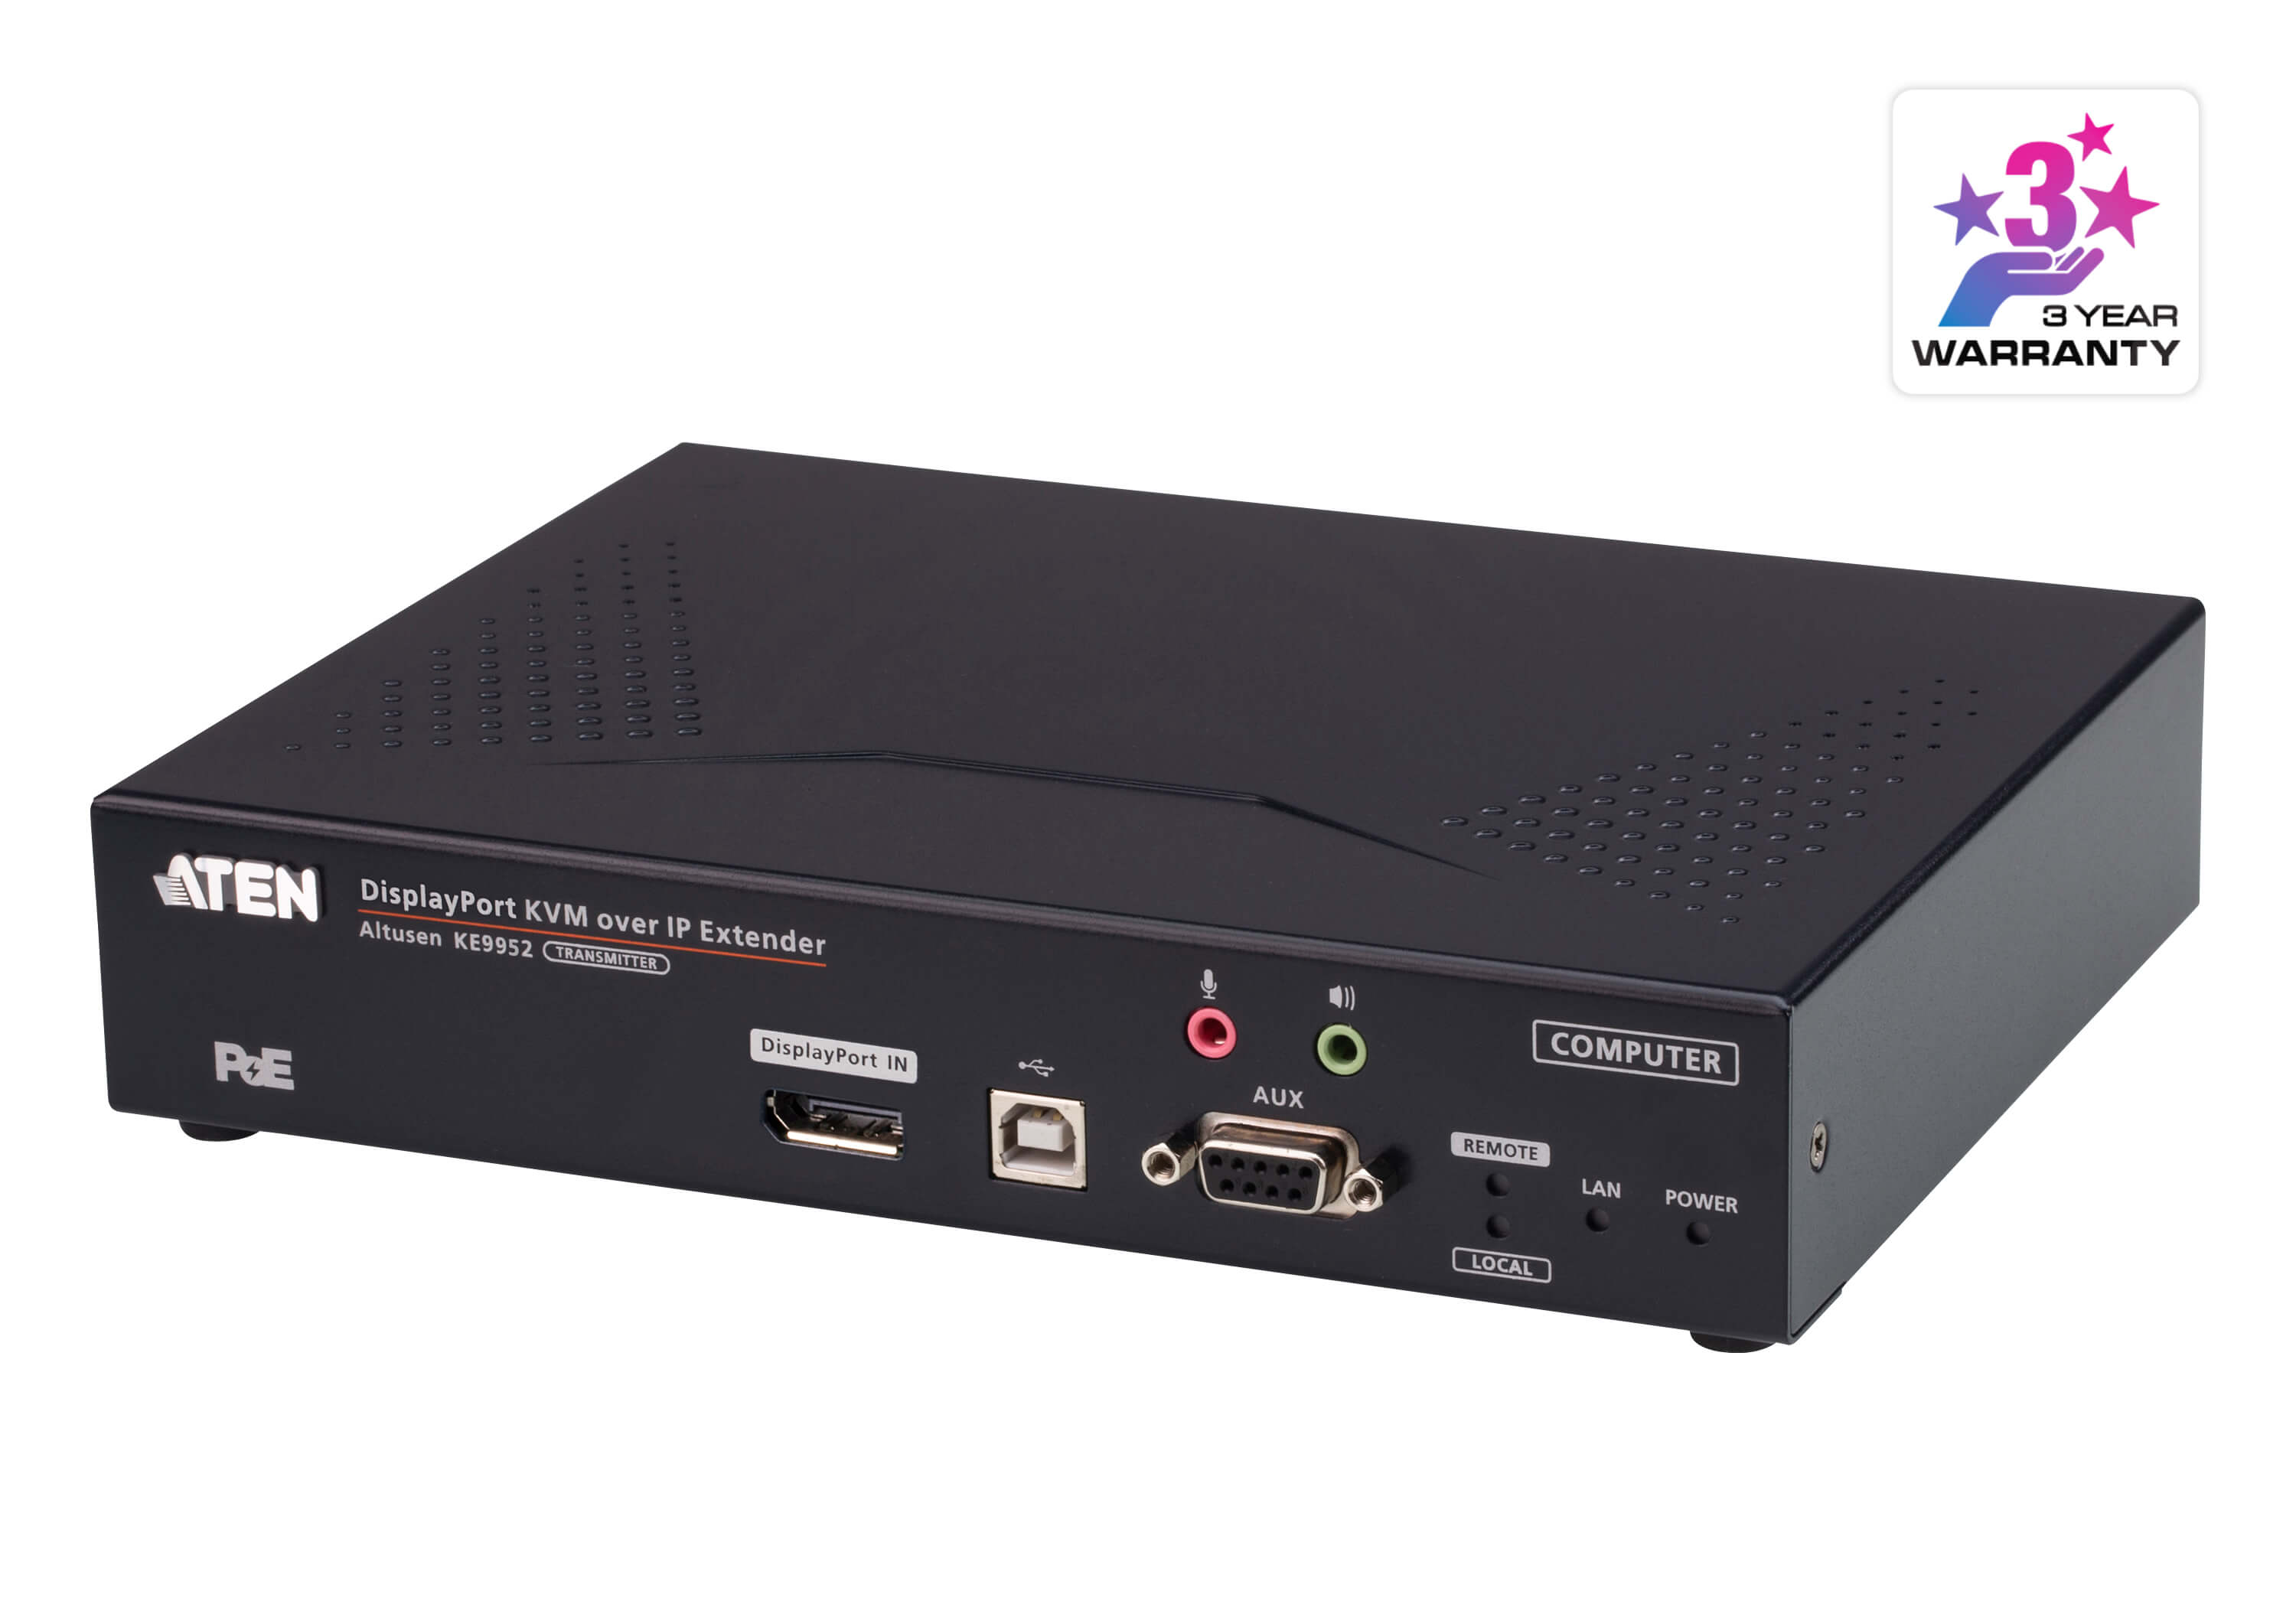 Aten 4K DP Single Display KVM over IP Transmitter with Power over Ethernet, power adapter not included